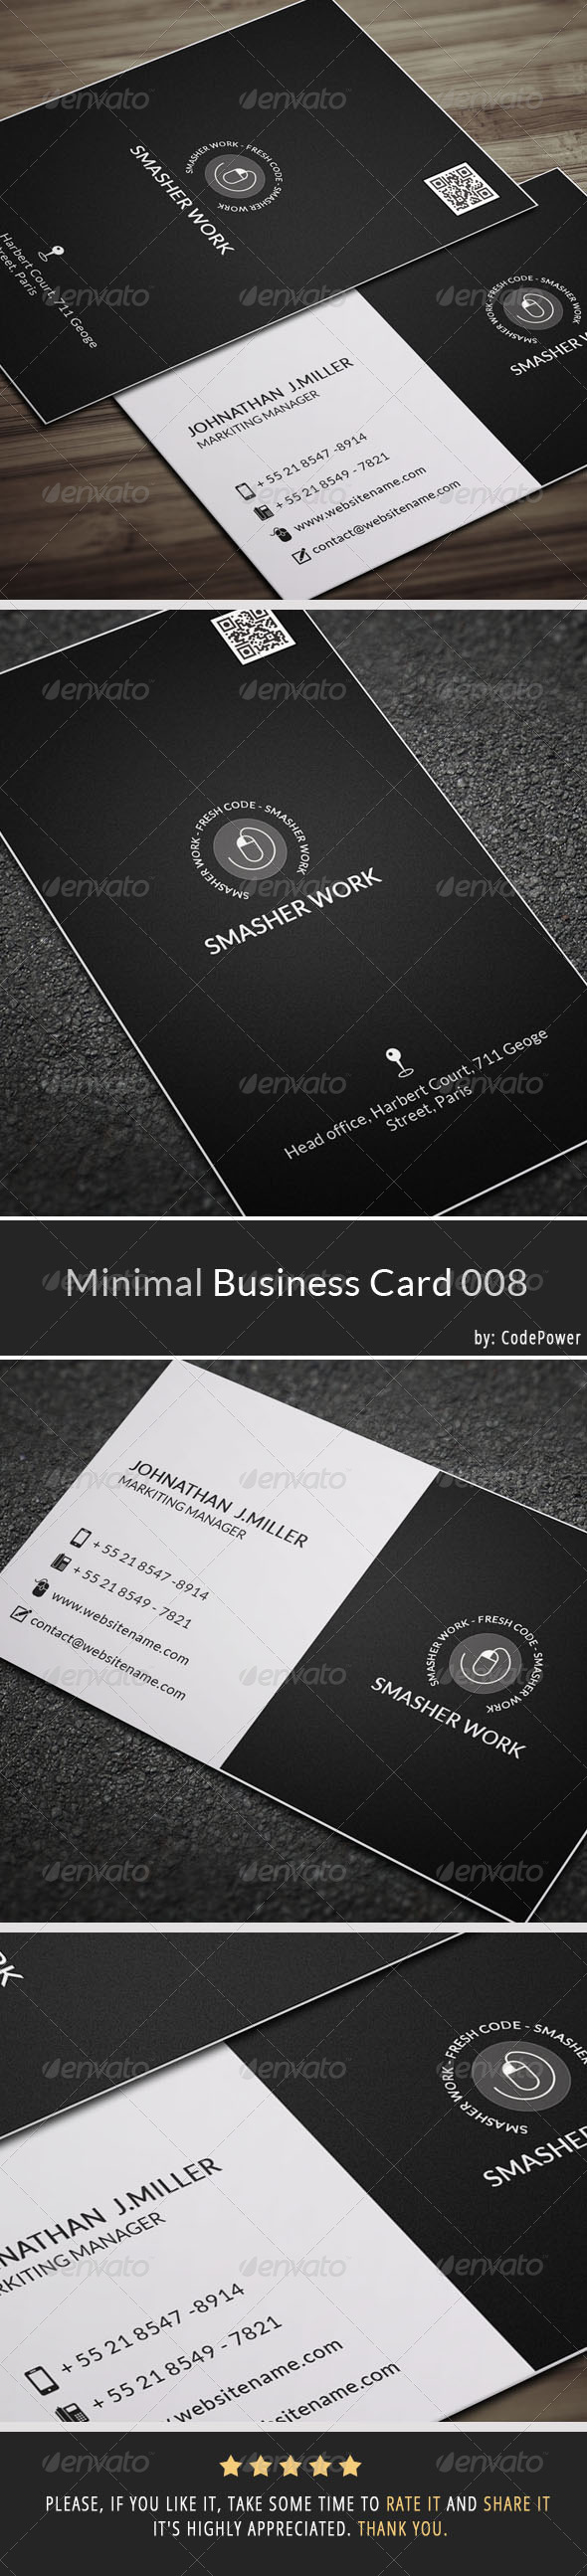 Minimal Business Card 008 - Corporate Business Cards